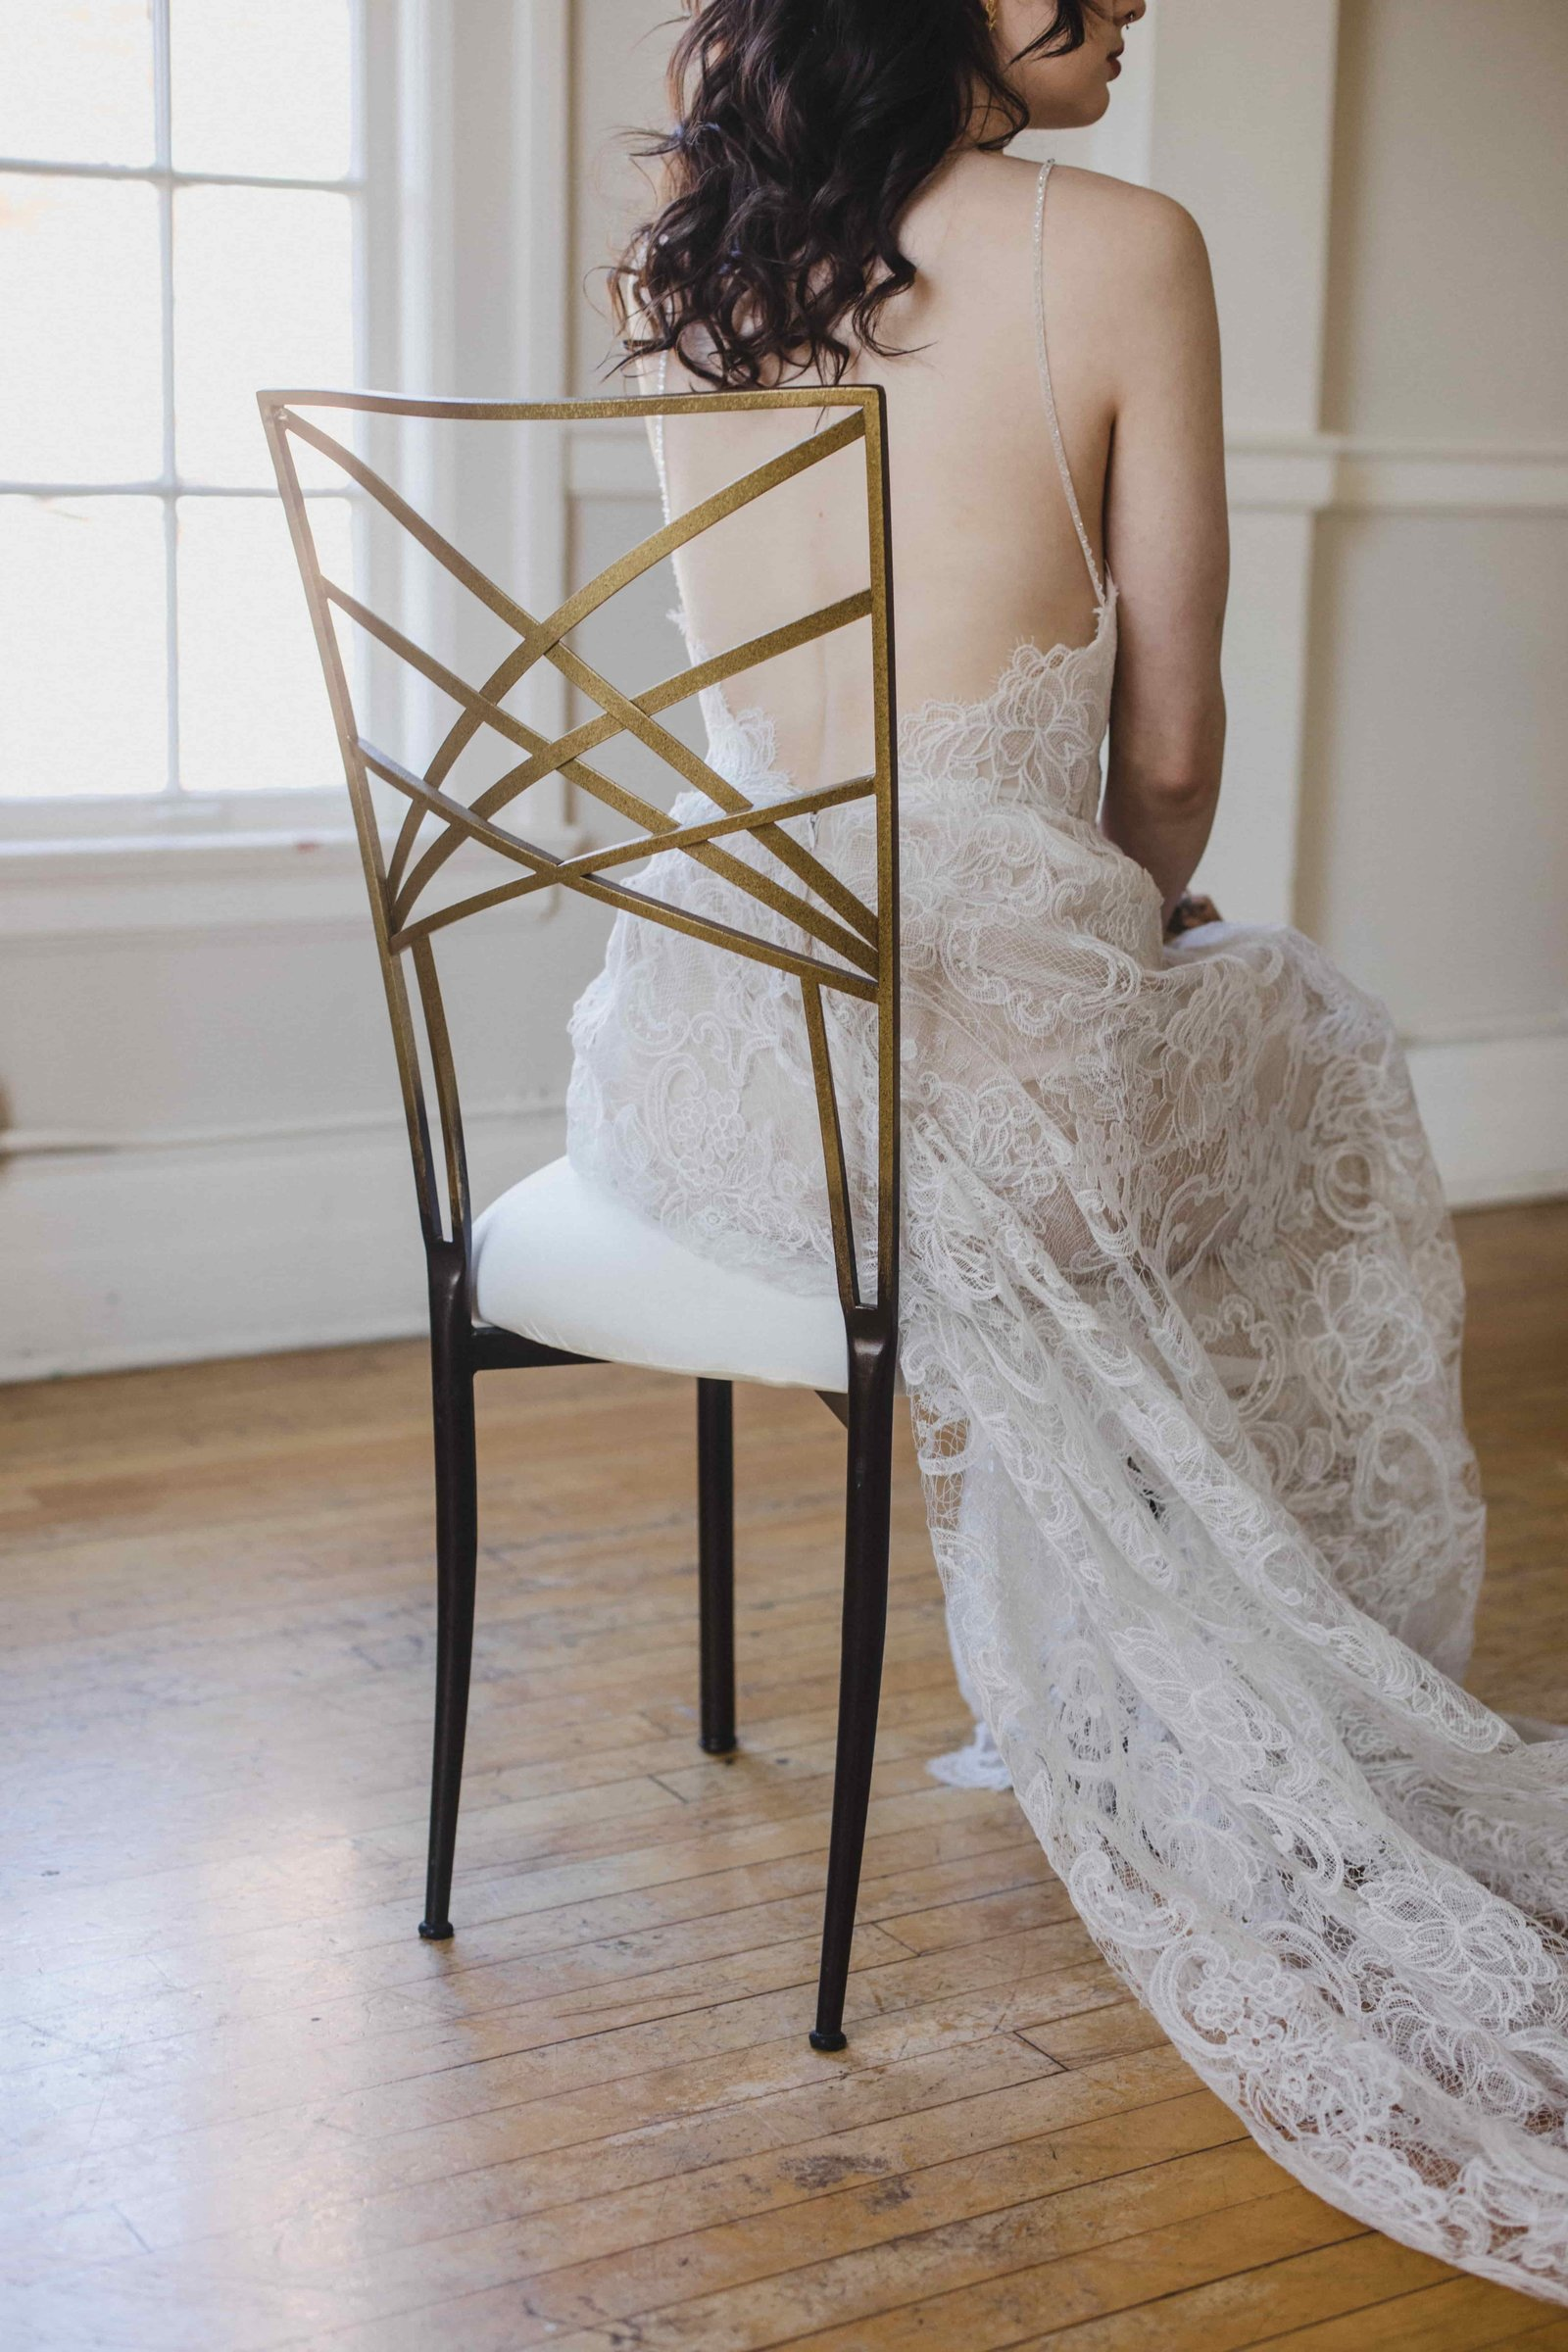 seattle wedding gold chair lace wedding dress-min